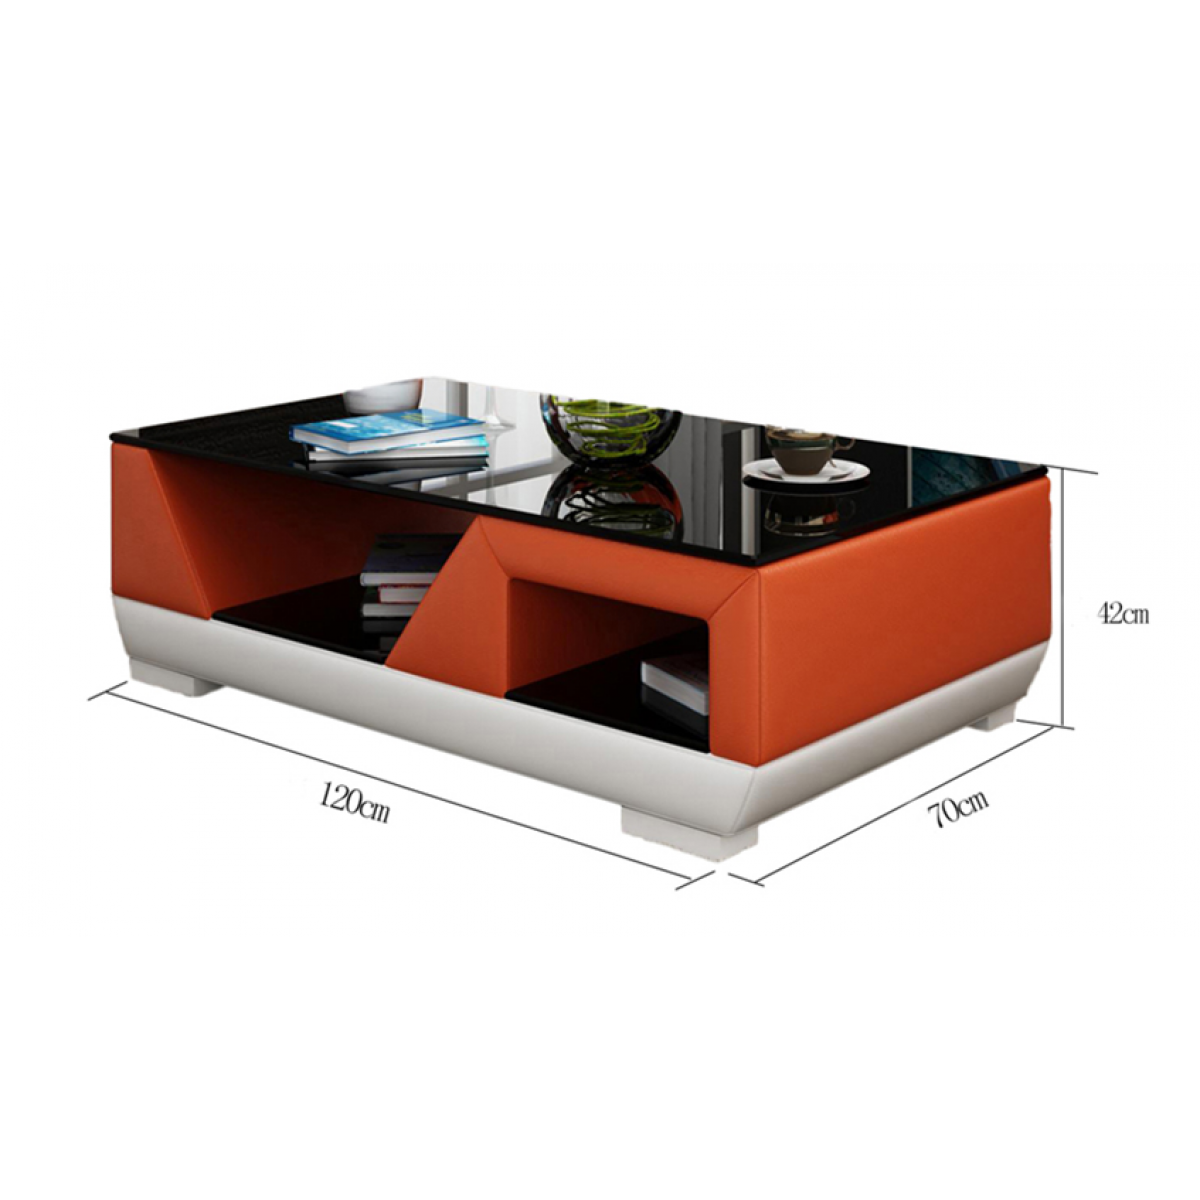 Table basse design klin pop - Table basse ultra design ...